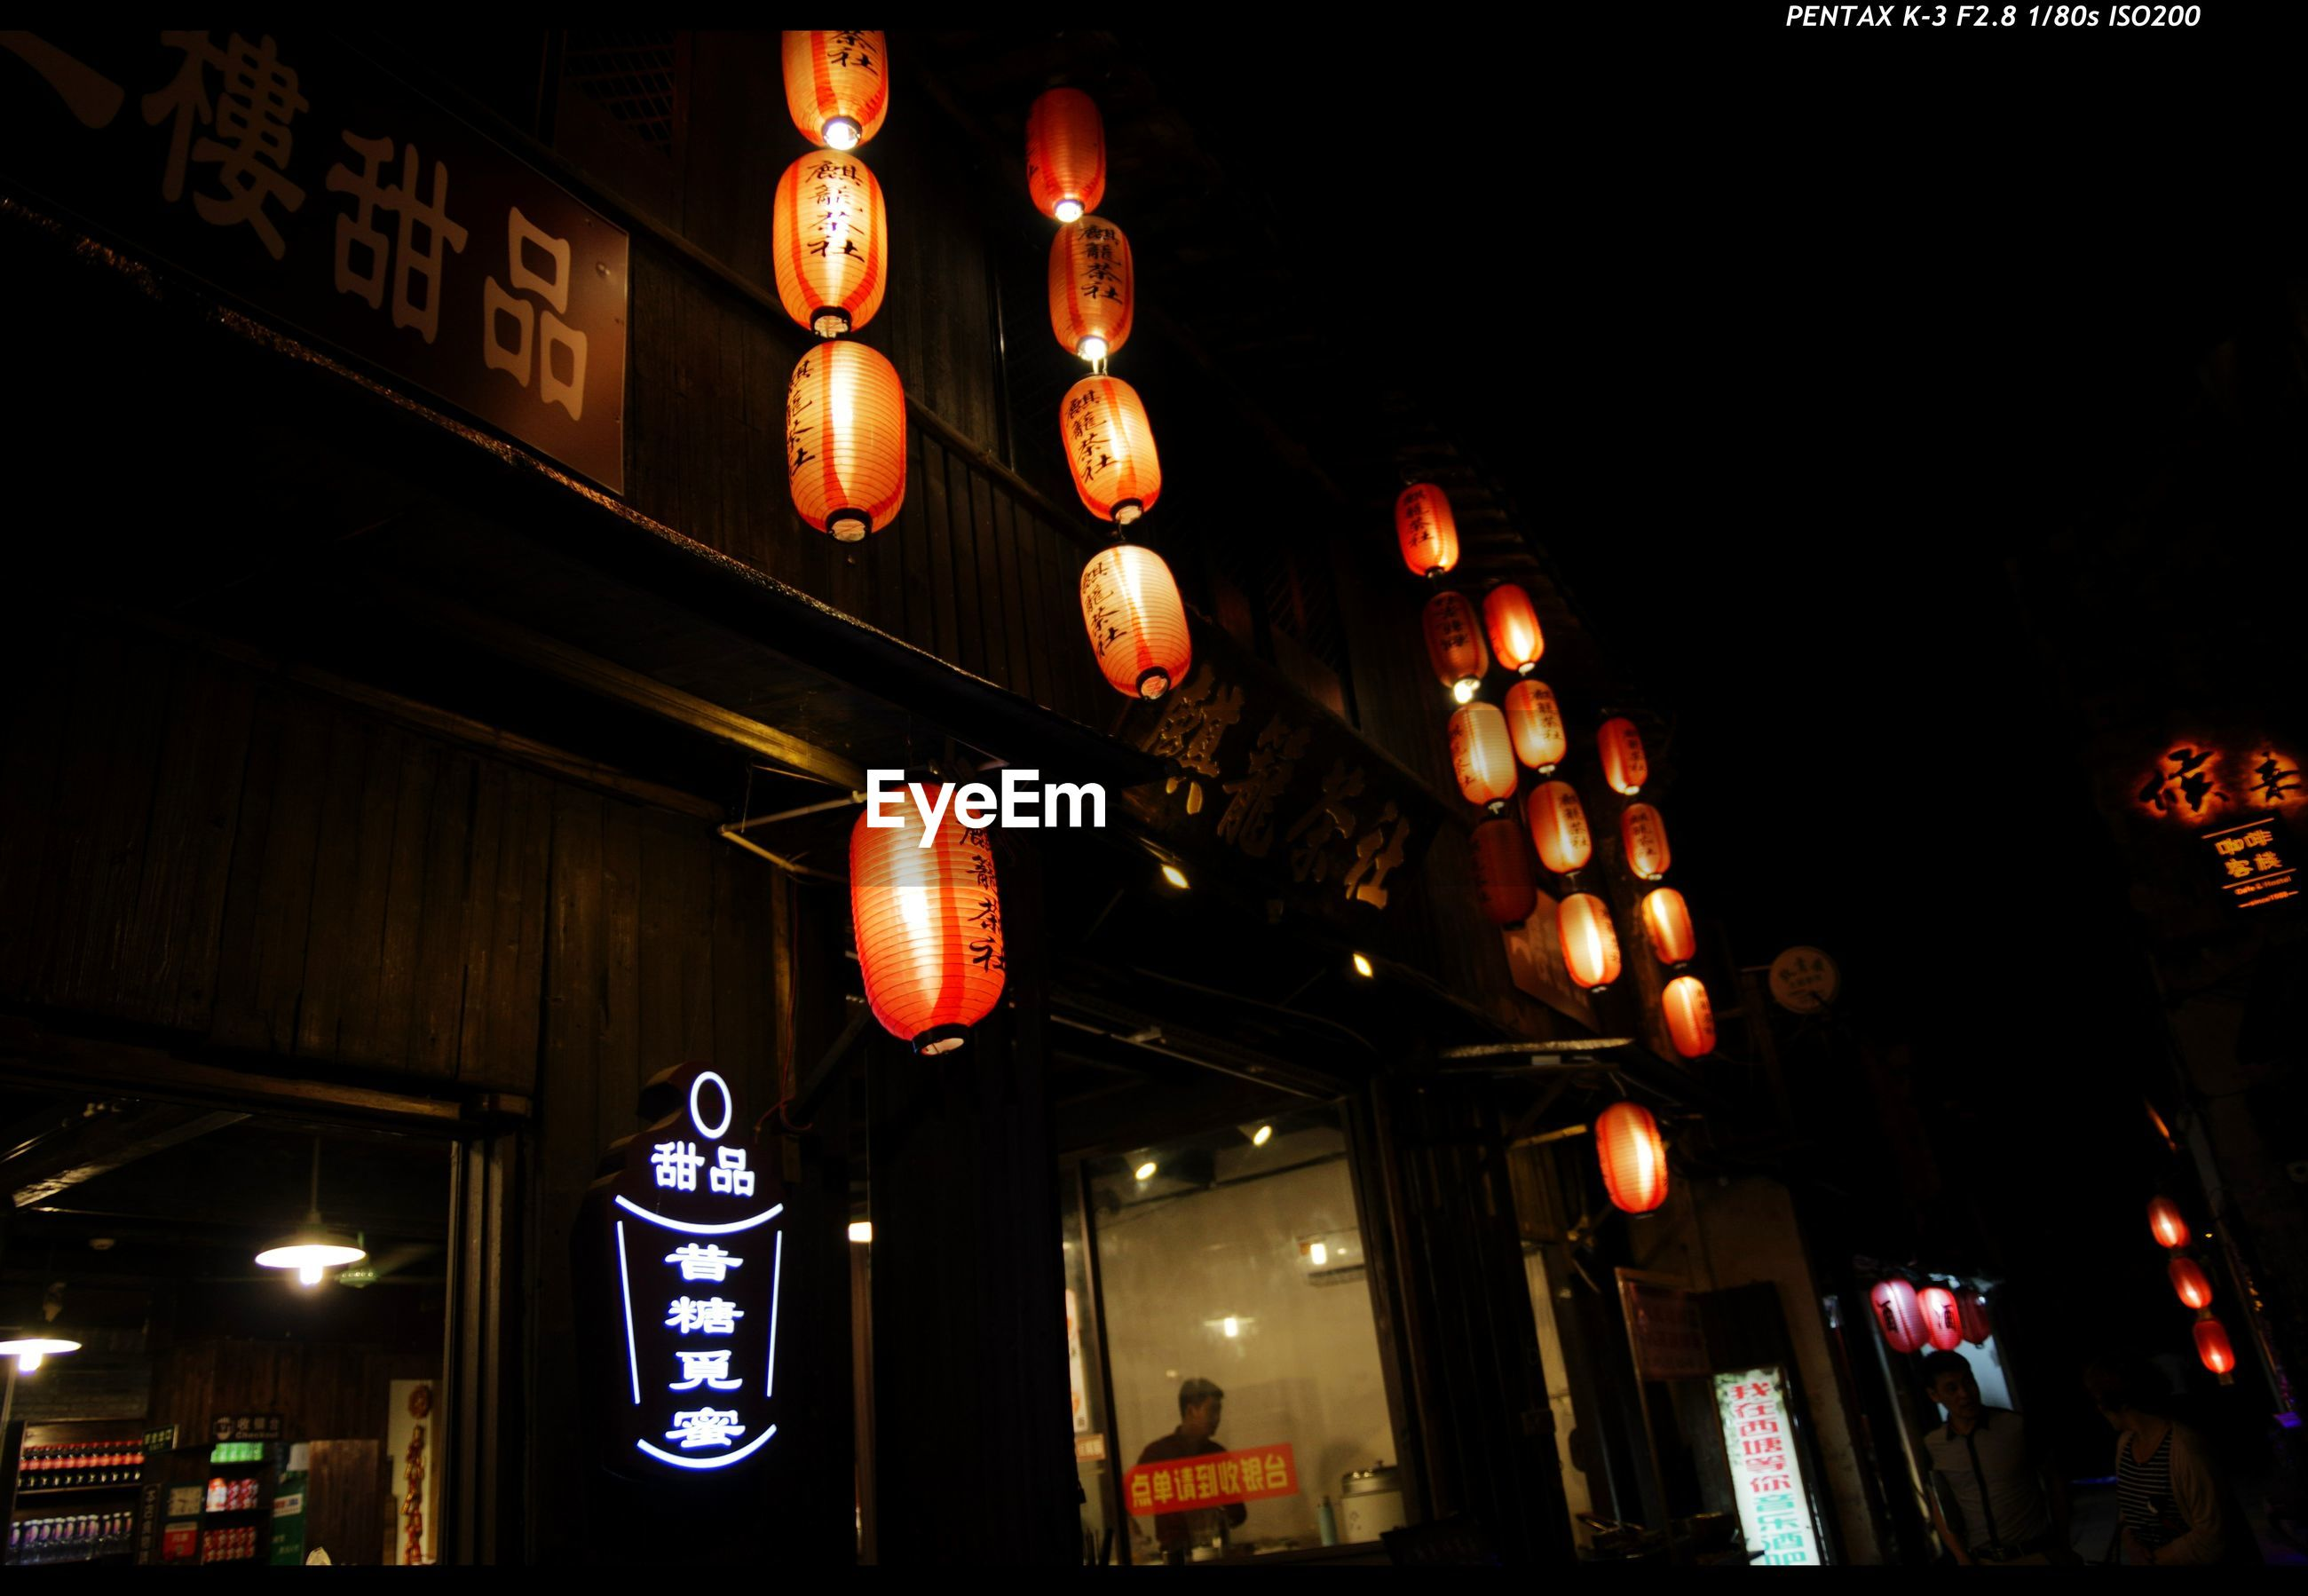 illuminated, night, text, communication, western script, lighting equipment, low angle view, indoors, hanging, non-western script, electricity, technology, lantern, no people, glowing, light - natural phenomenon, neon, close-up, electric light, lit